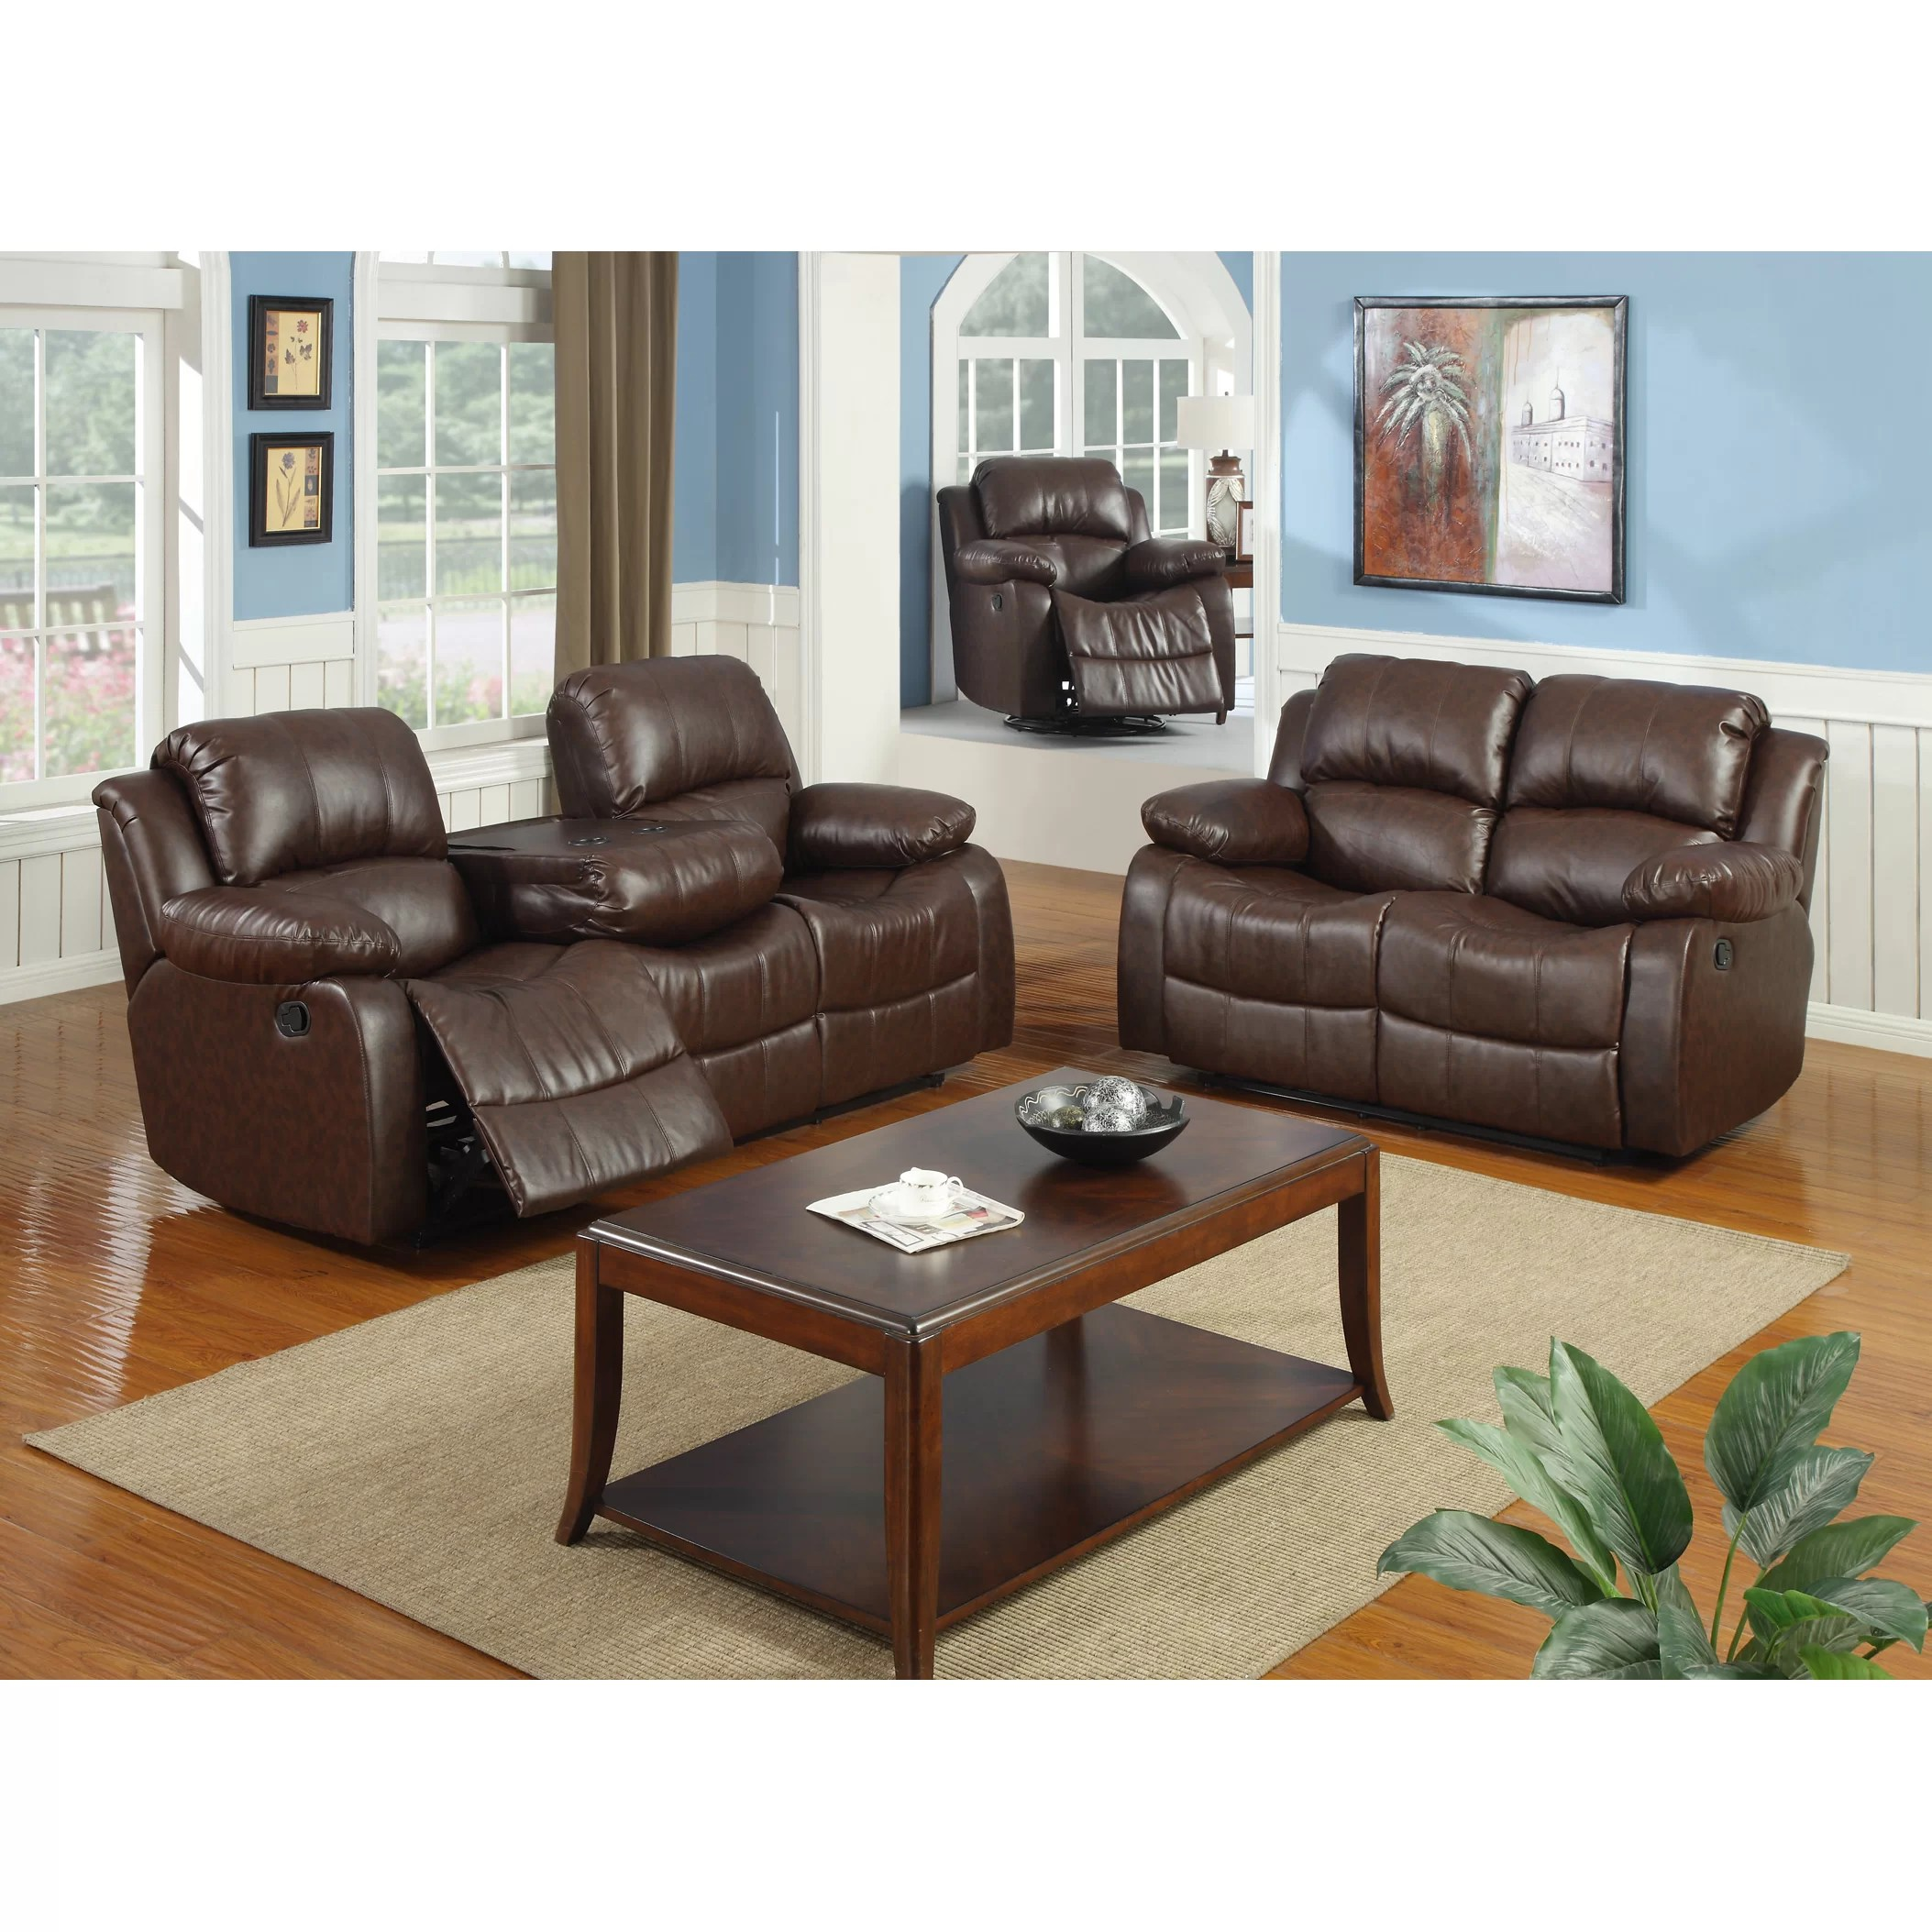 Best Quality Furniture Bonded Leather 3 Piece Recliner